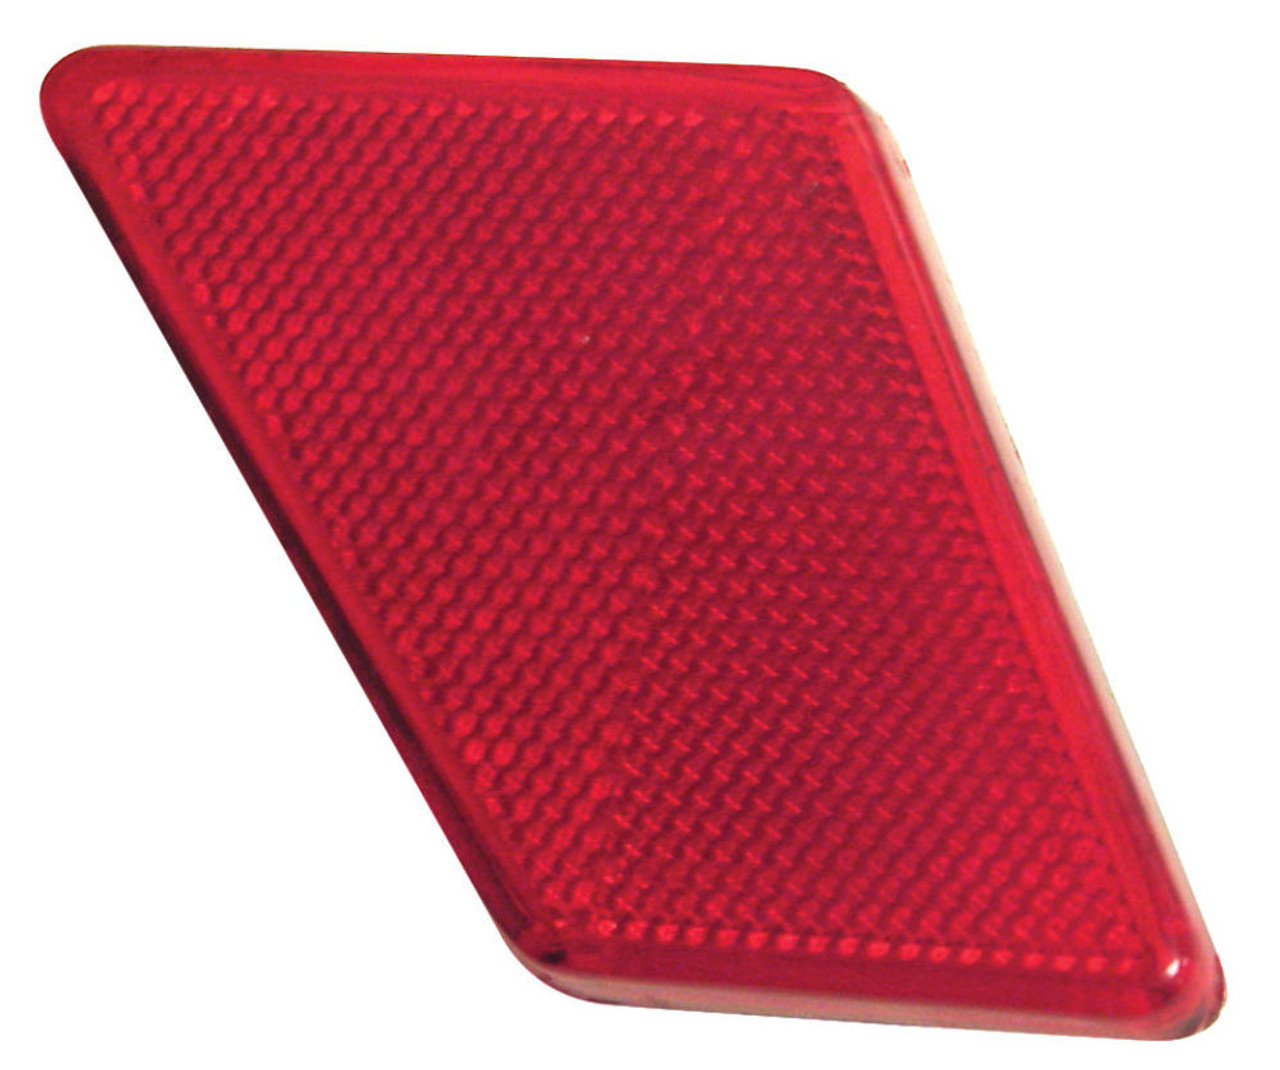 Tail Light Reflector, Rear Right, Sold Each, Fits VW Bug Type 1 1970-72, EMPI 98-9507